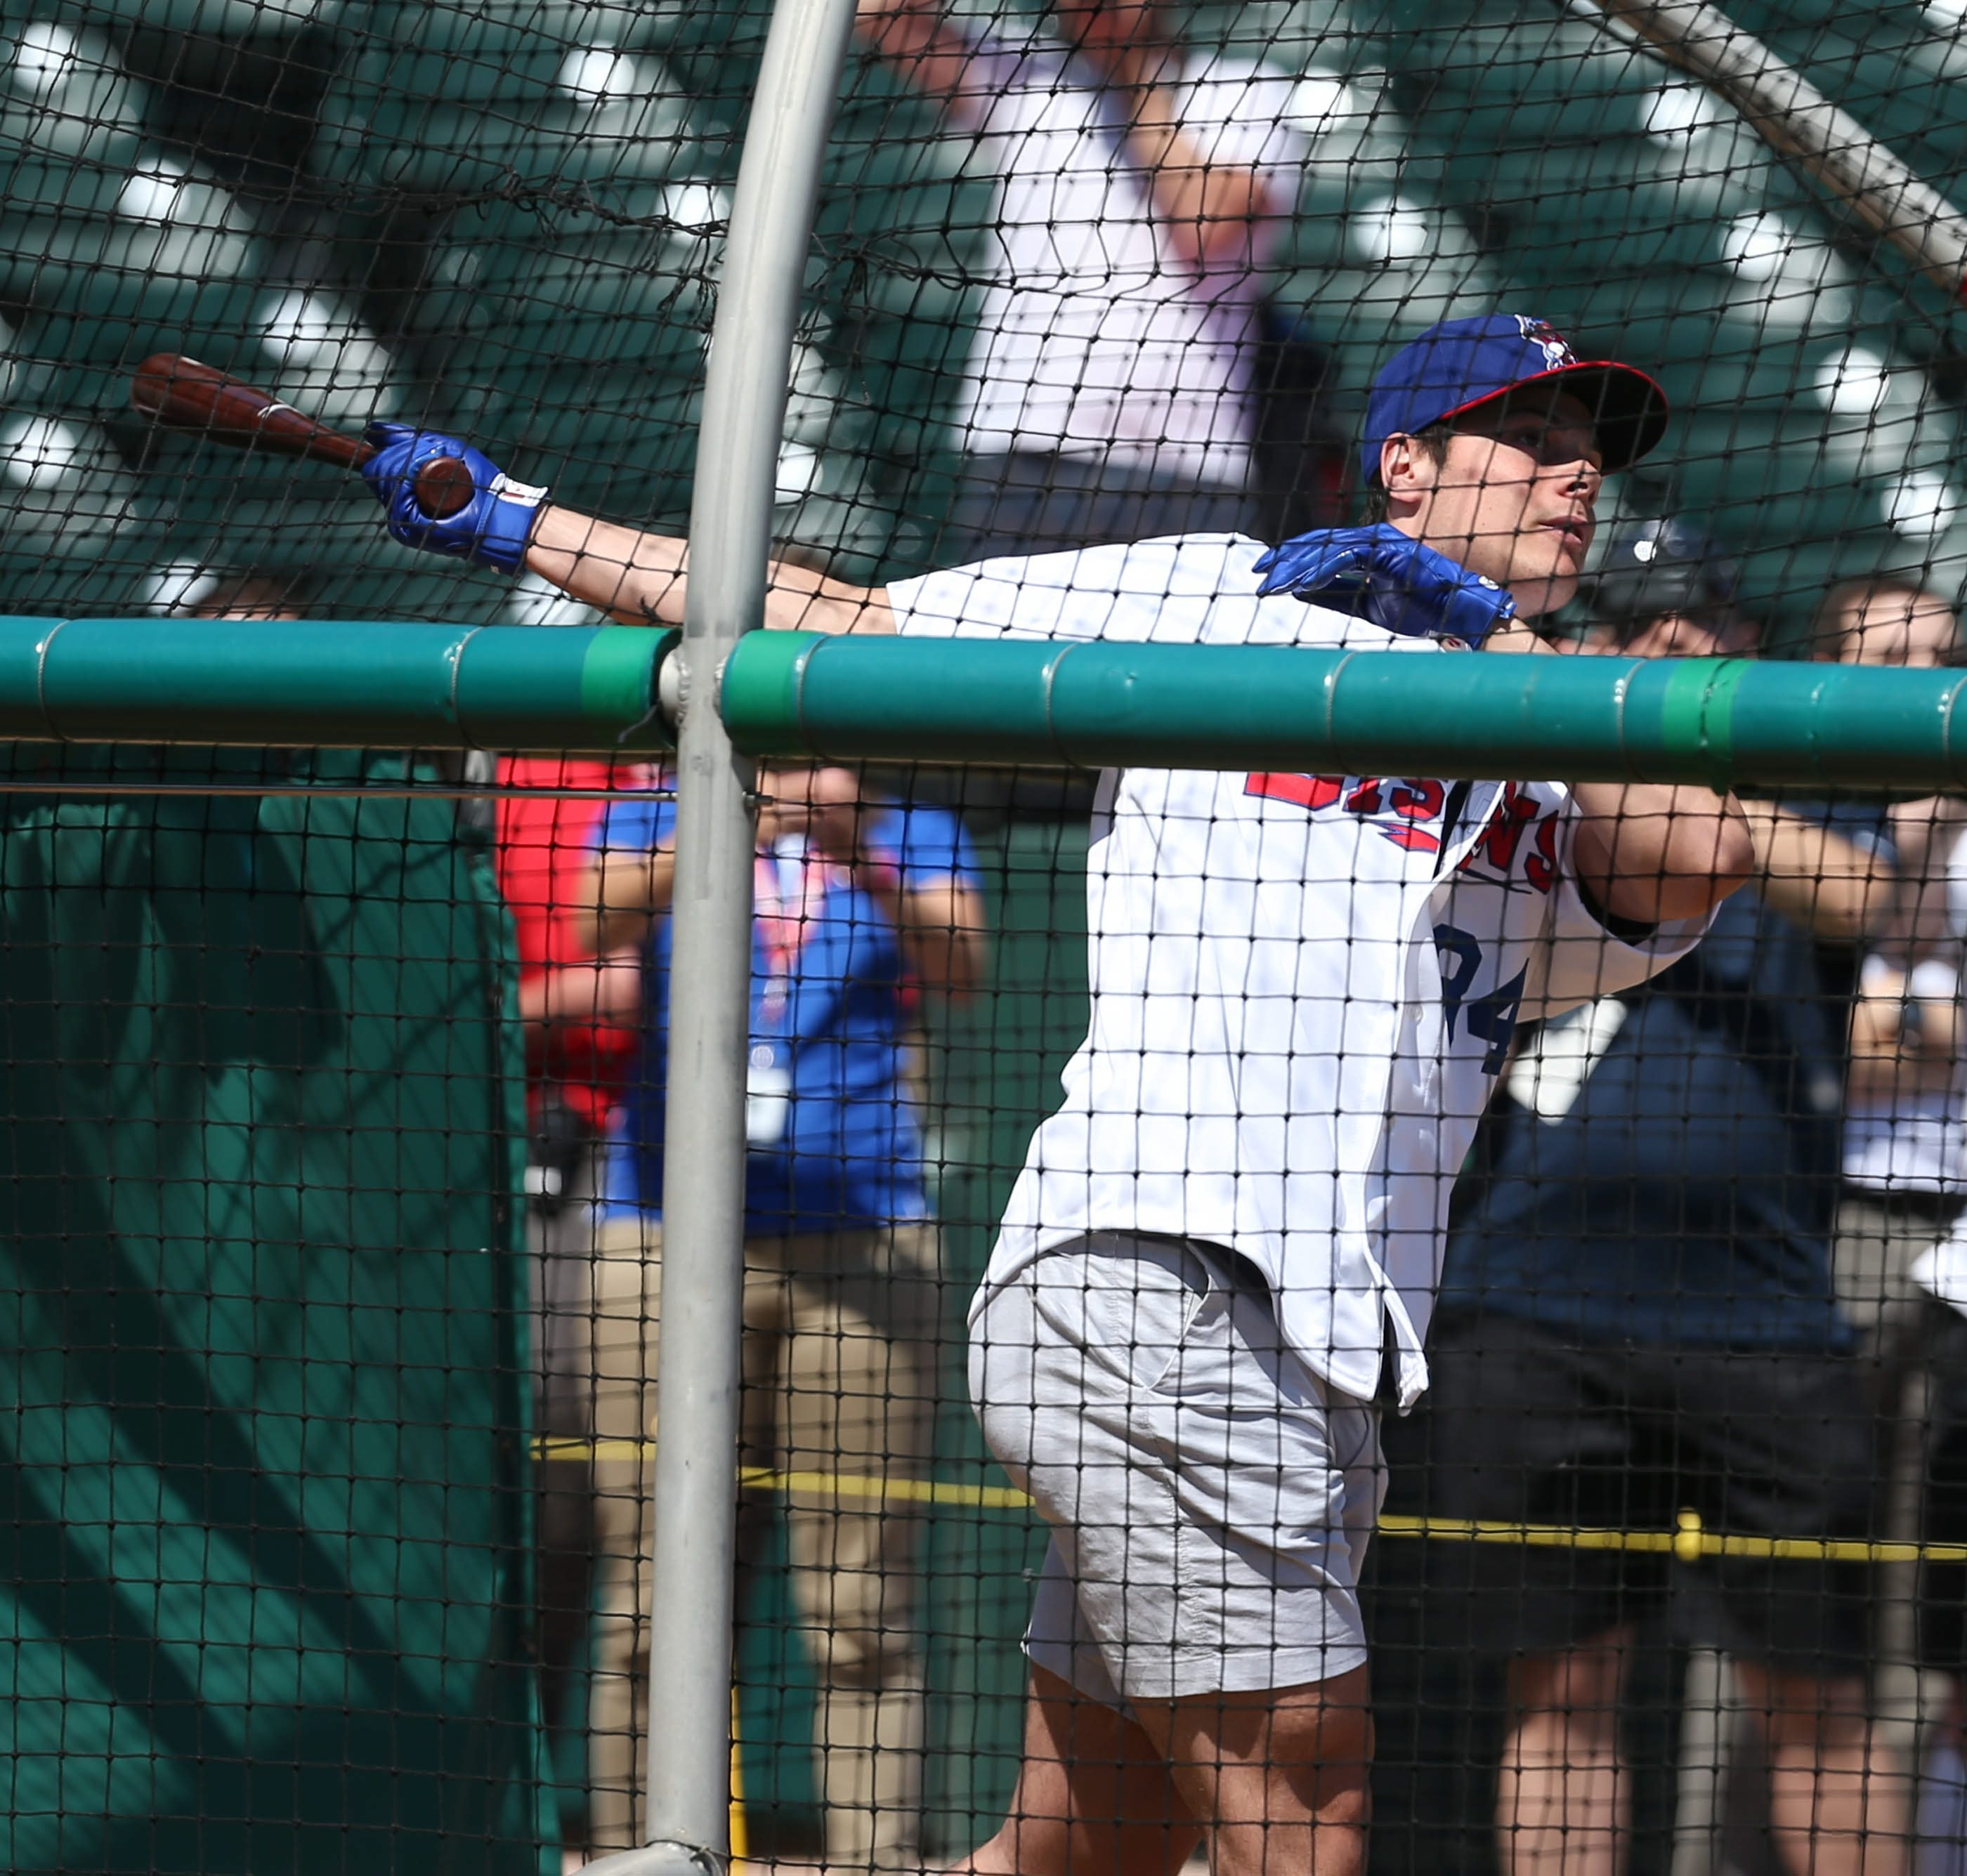 He didn't go deep but Auston Matthews, the presumptive No. 1 pick in Friday's NHL Draft, got in some good cuts when the top draft prospects took batting practice  at Coca-Cola Field on Wednesday afternoon.